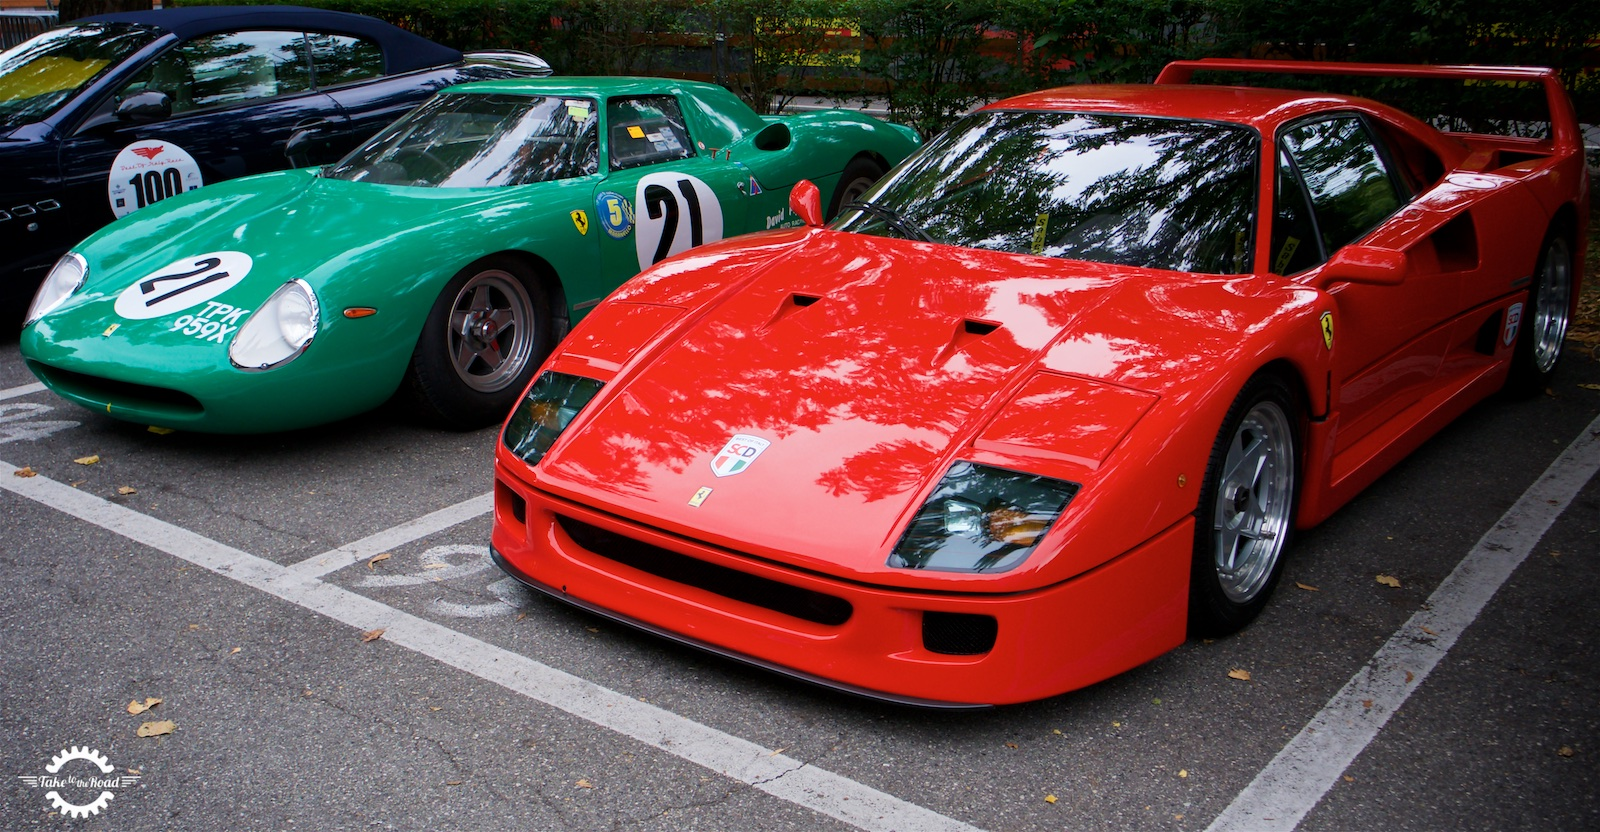 The Game Changer that was the Ferrari F40